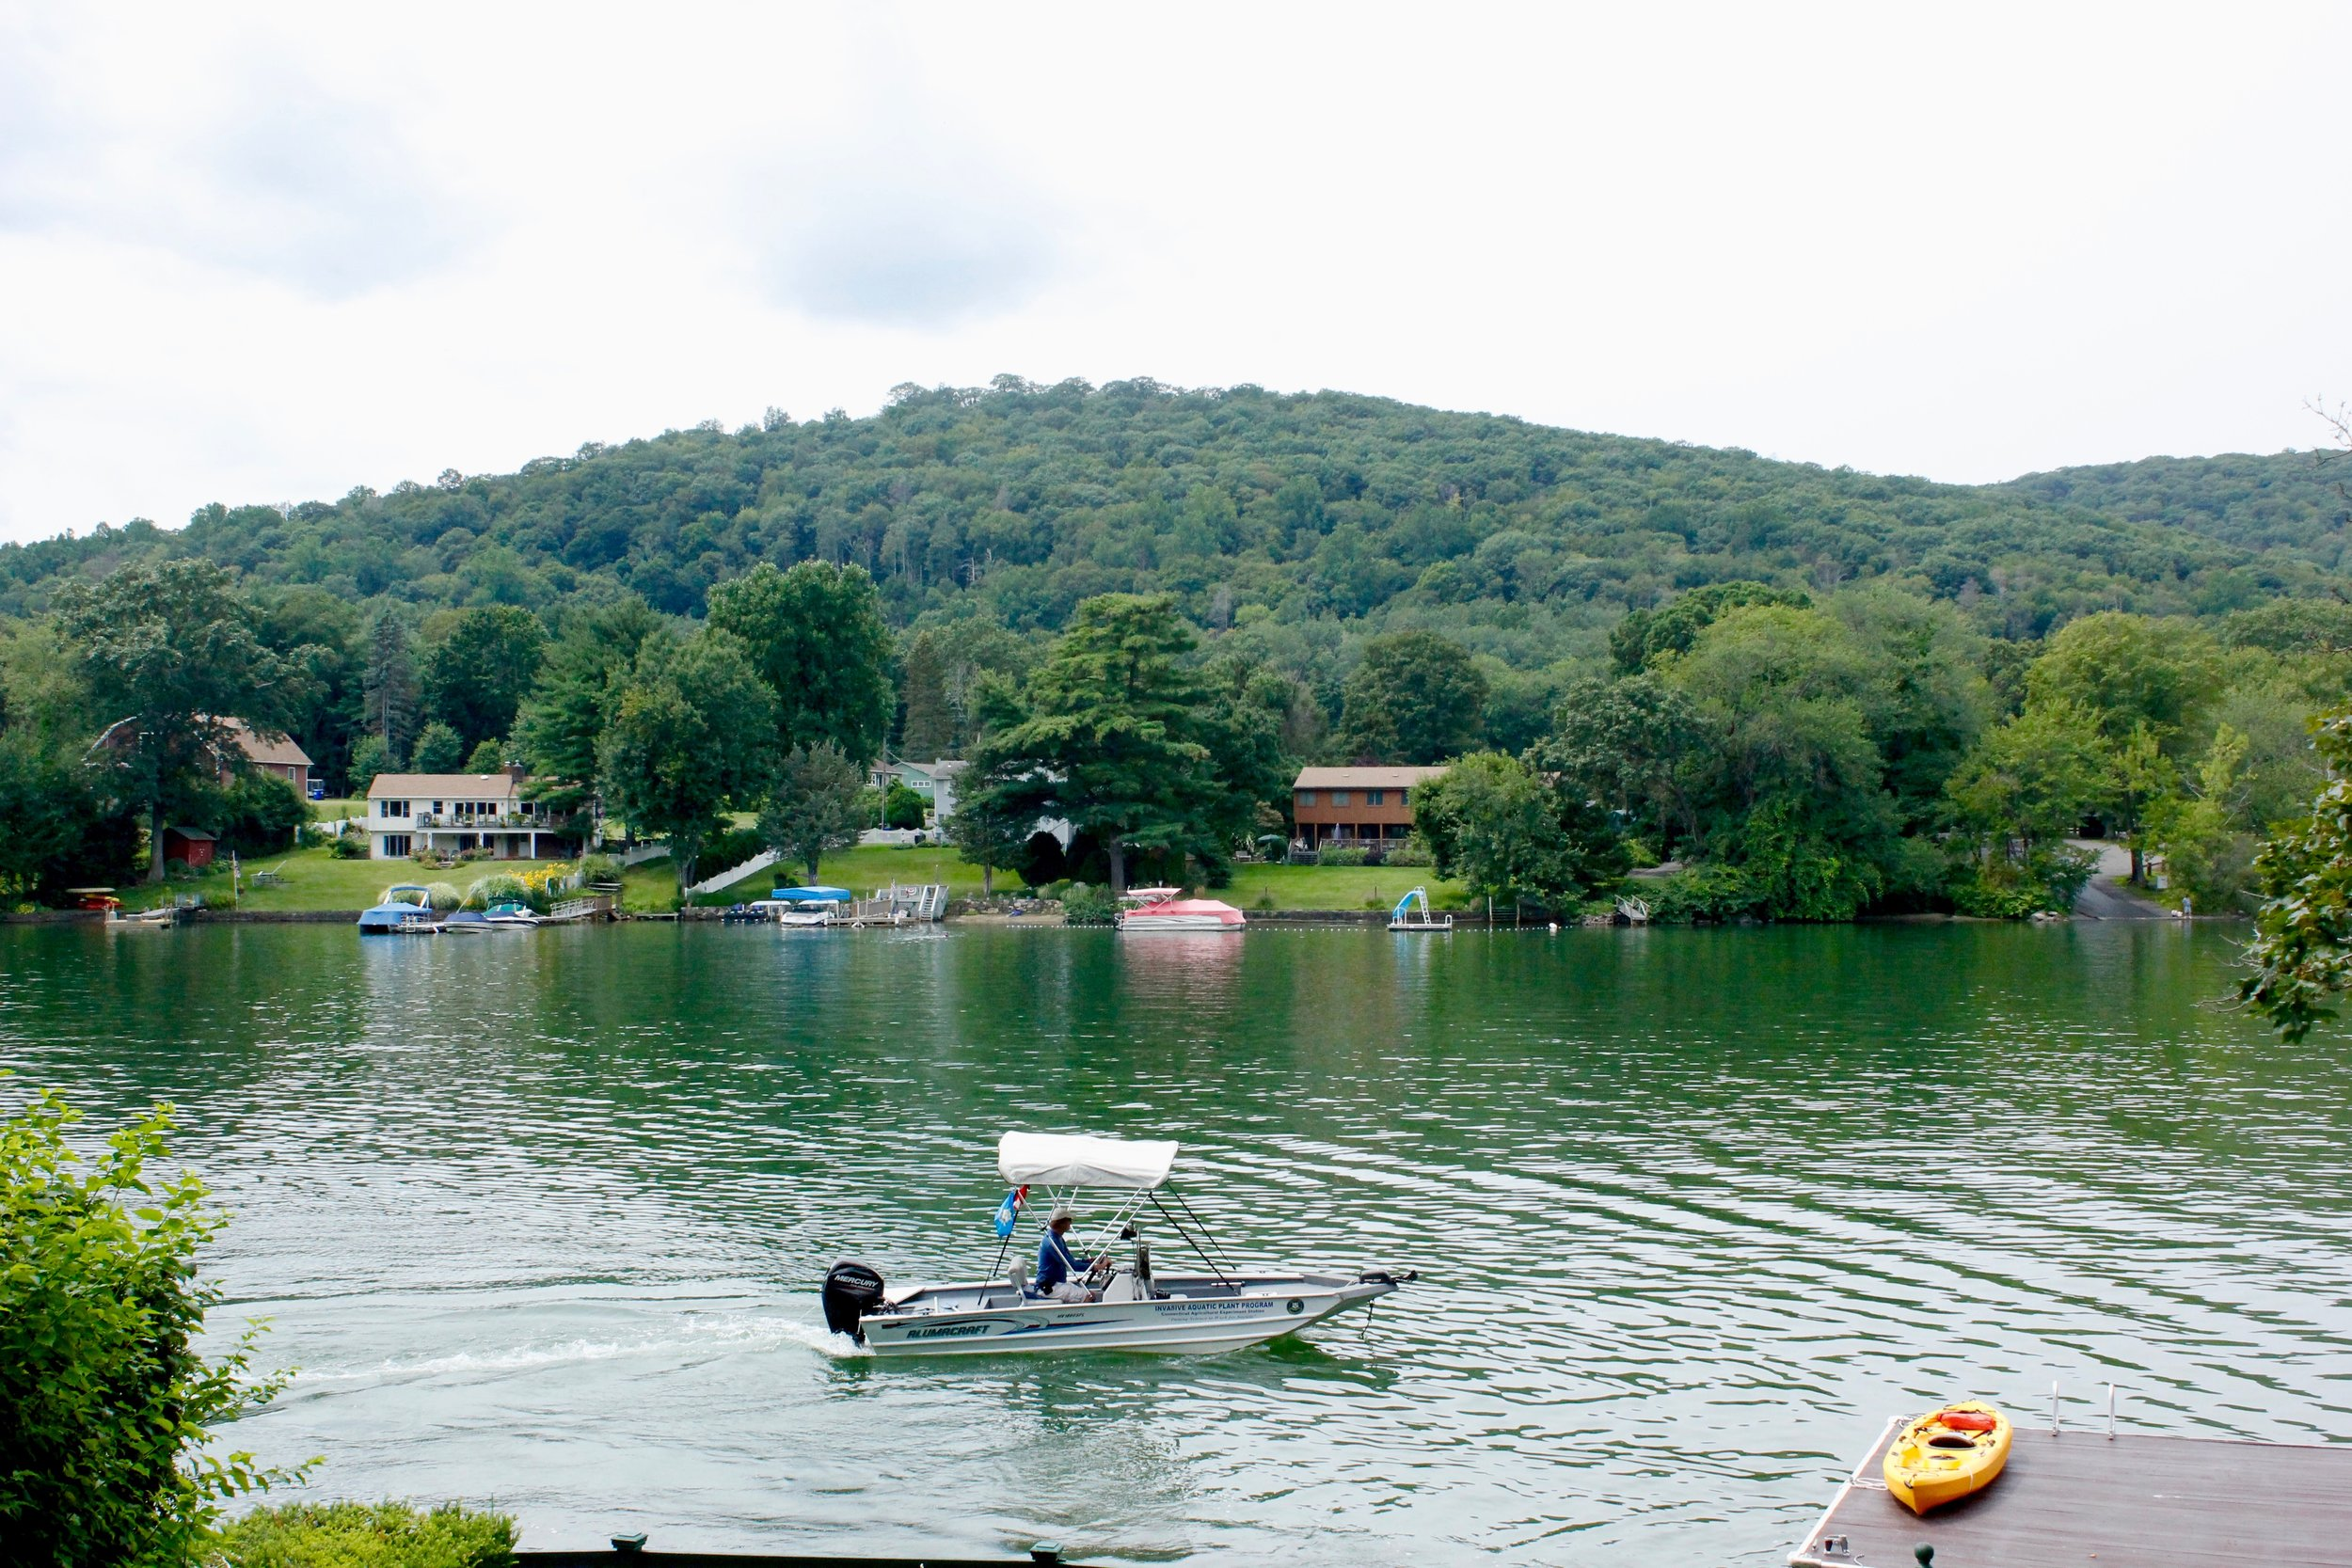 Candlewood Lake, where people boat & play, serves as a form of energy storage where water sits until it's needed to produce electricity.